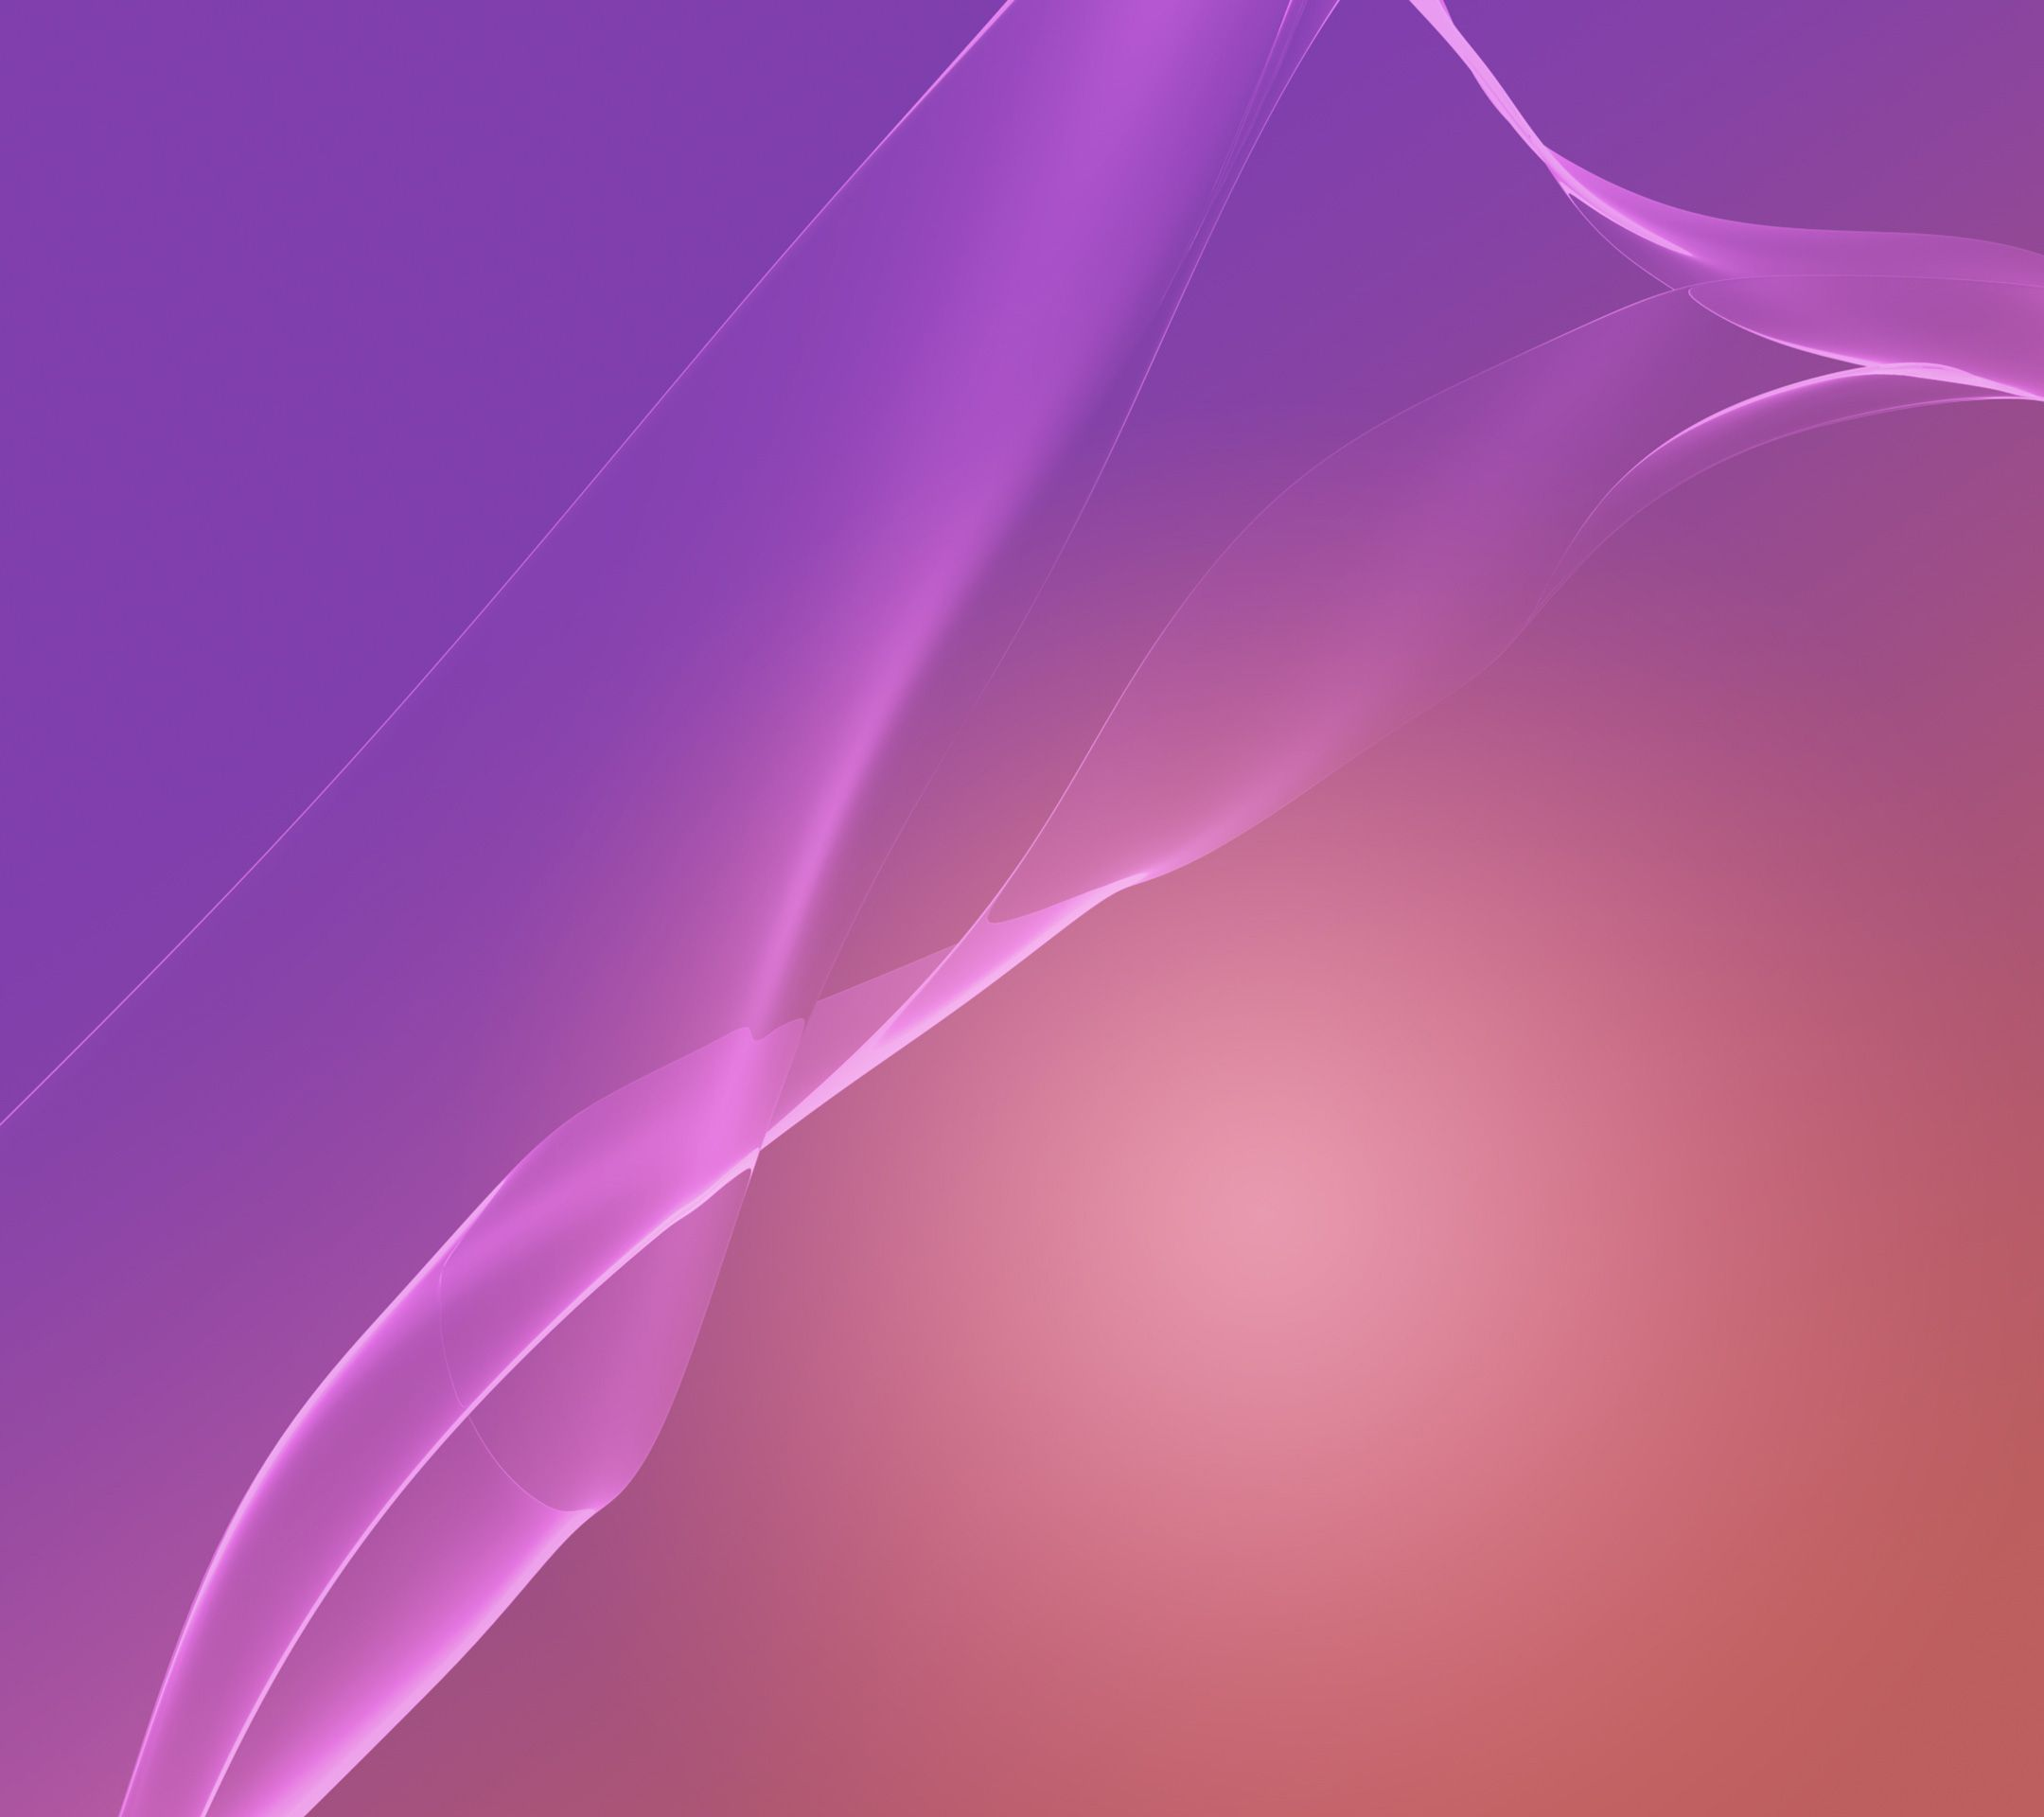 download stock wallpapers from sony xperia z2 techbeasts